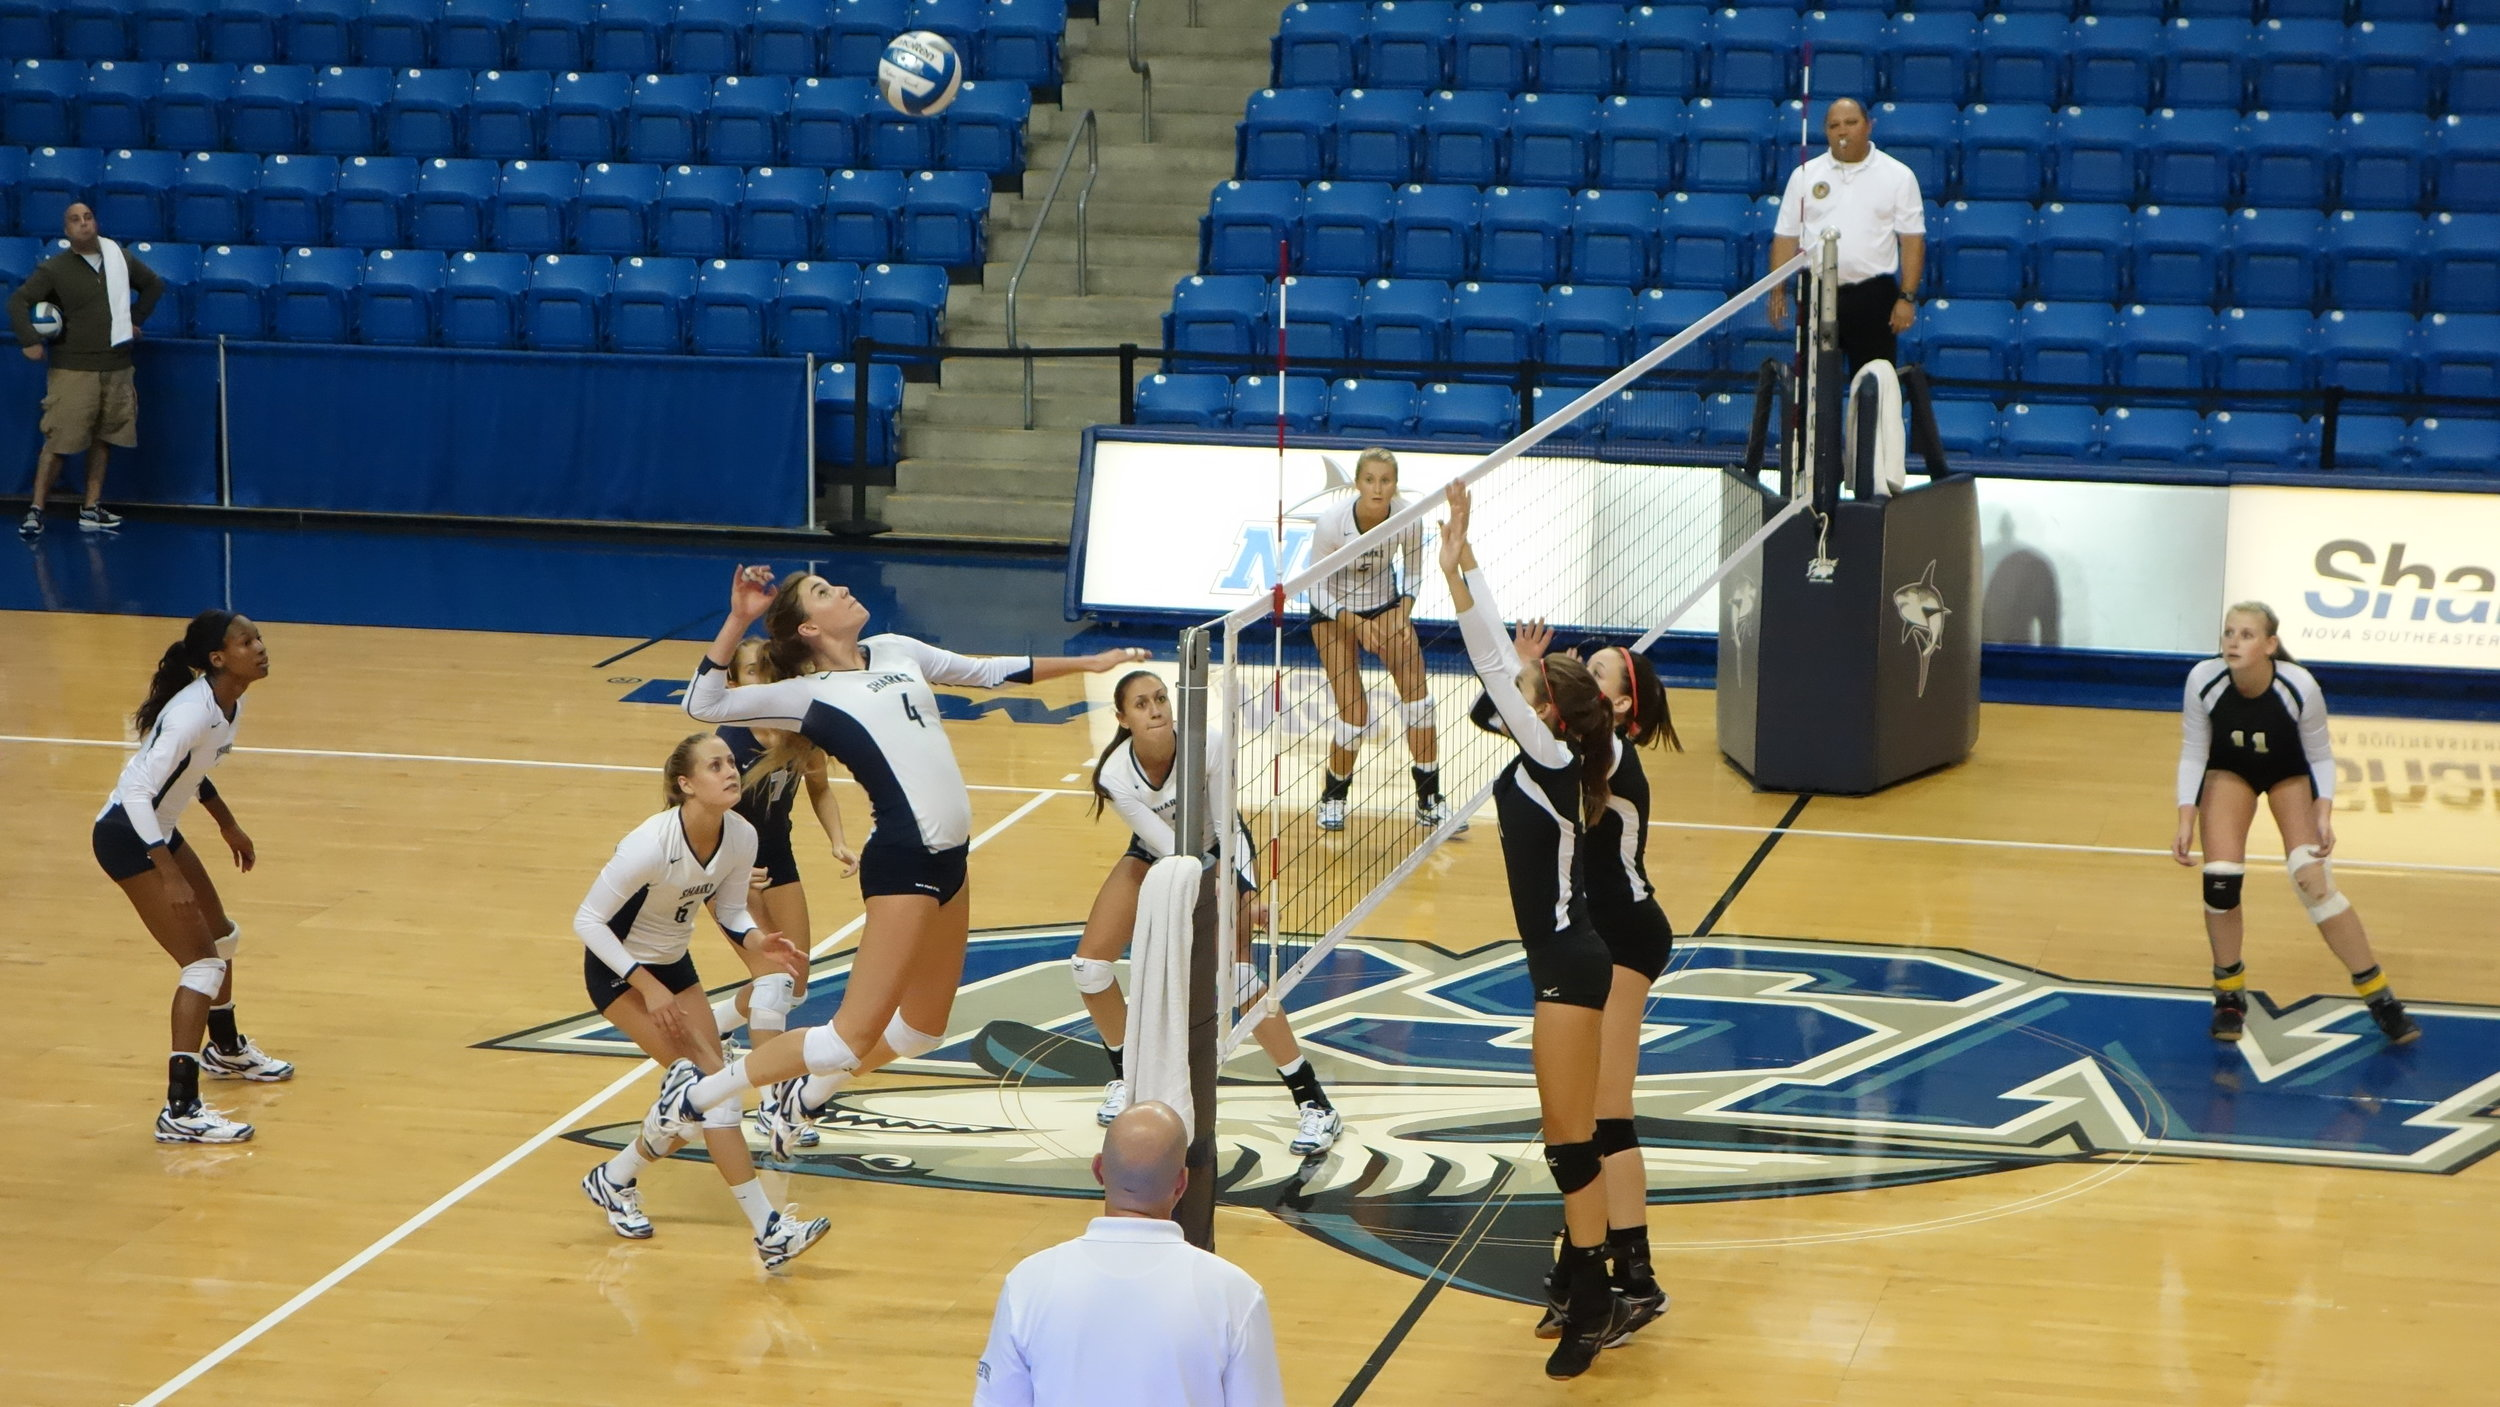 One of our former Industry VBC club players getting ready to crush the back set at Nova Southeastern University.